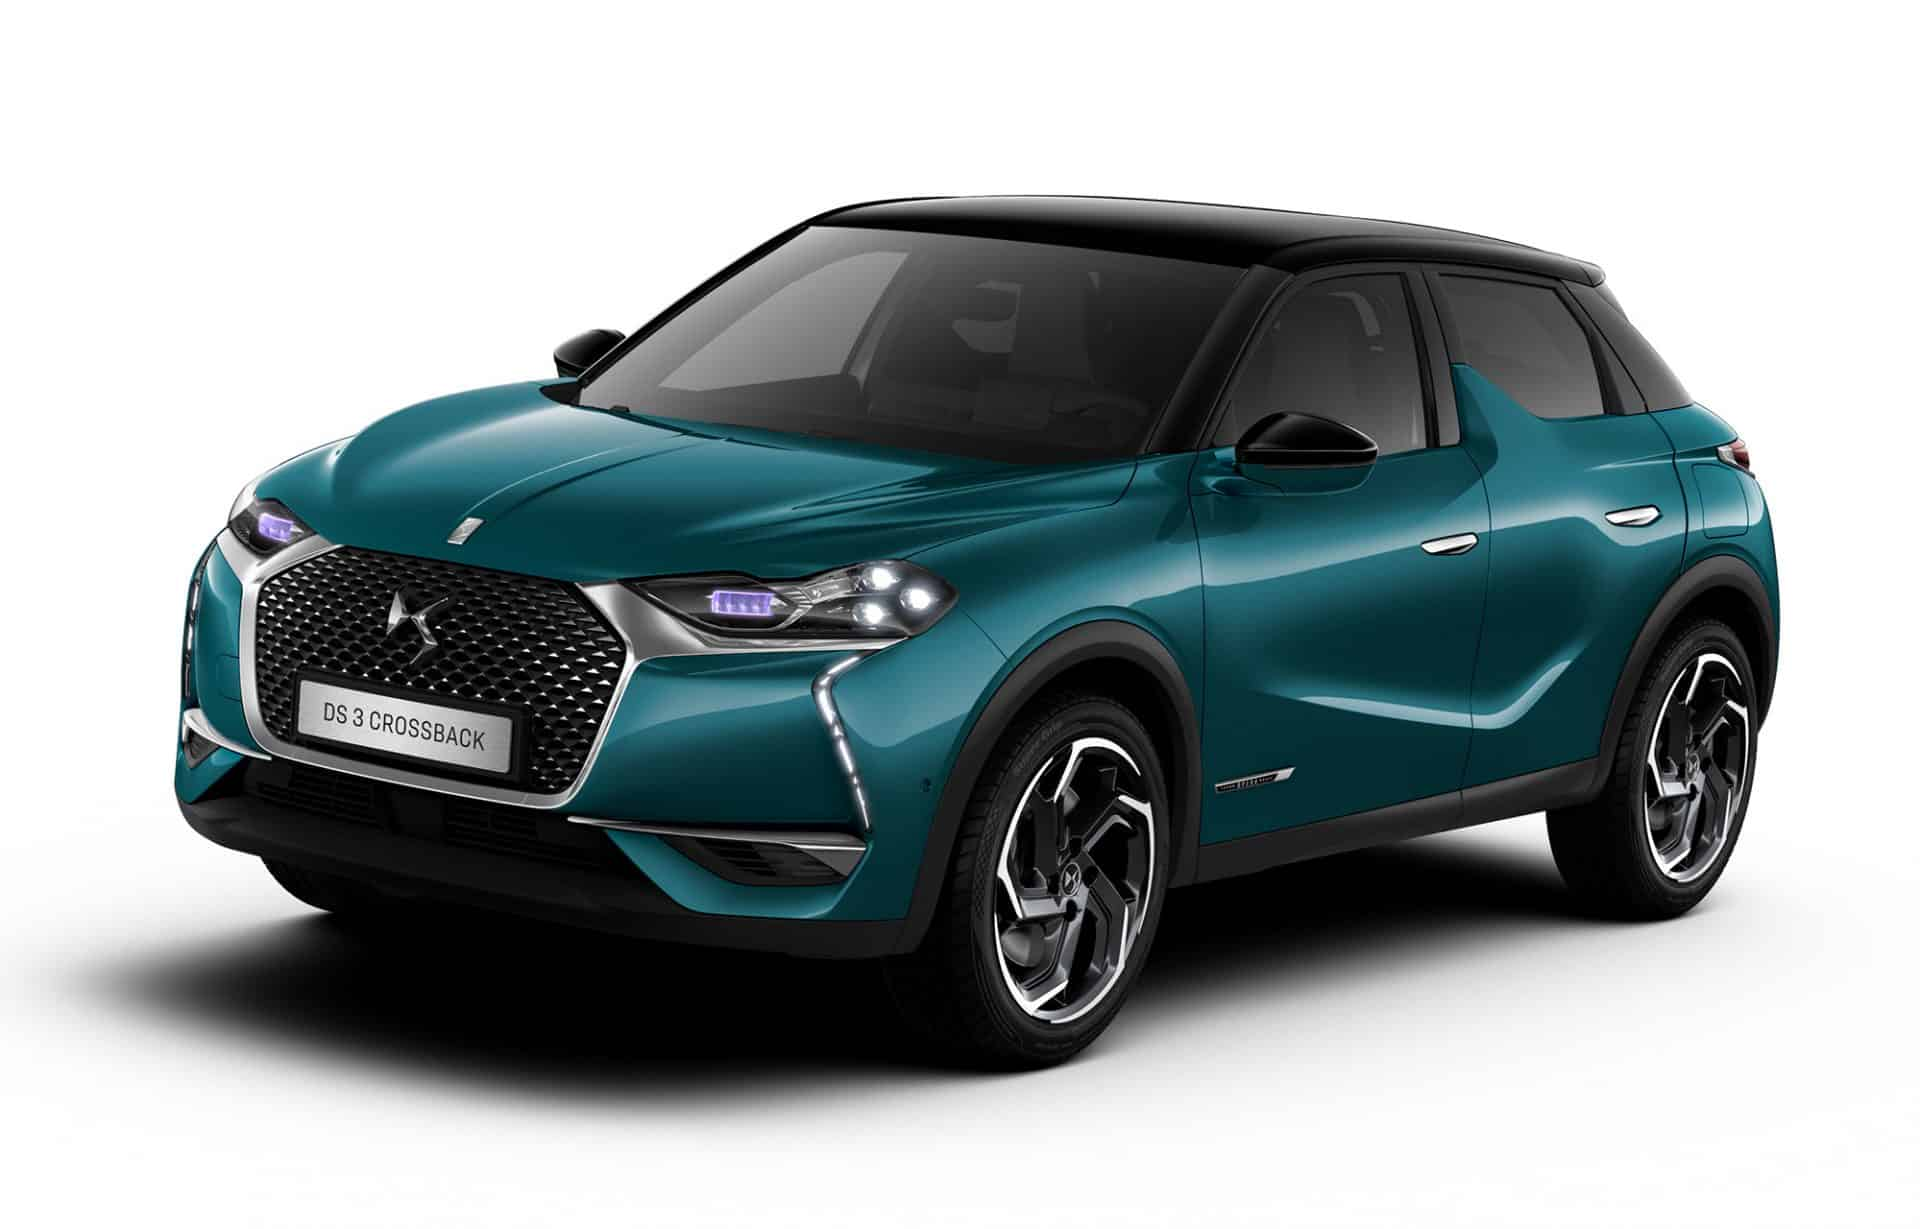 ds 3 crossback to take on audi a2 auto breaking news. Black Bedroom Furniture Sets. Home Design Ideas